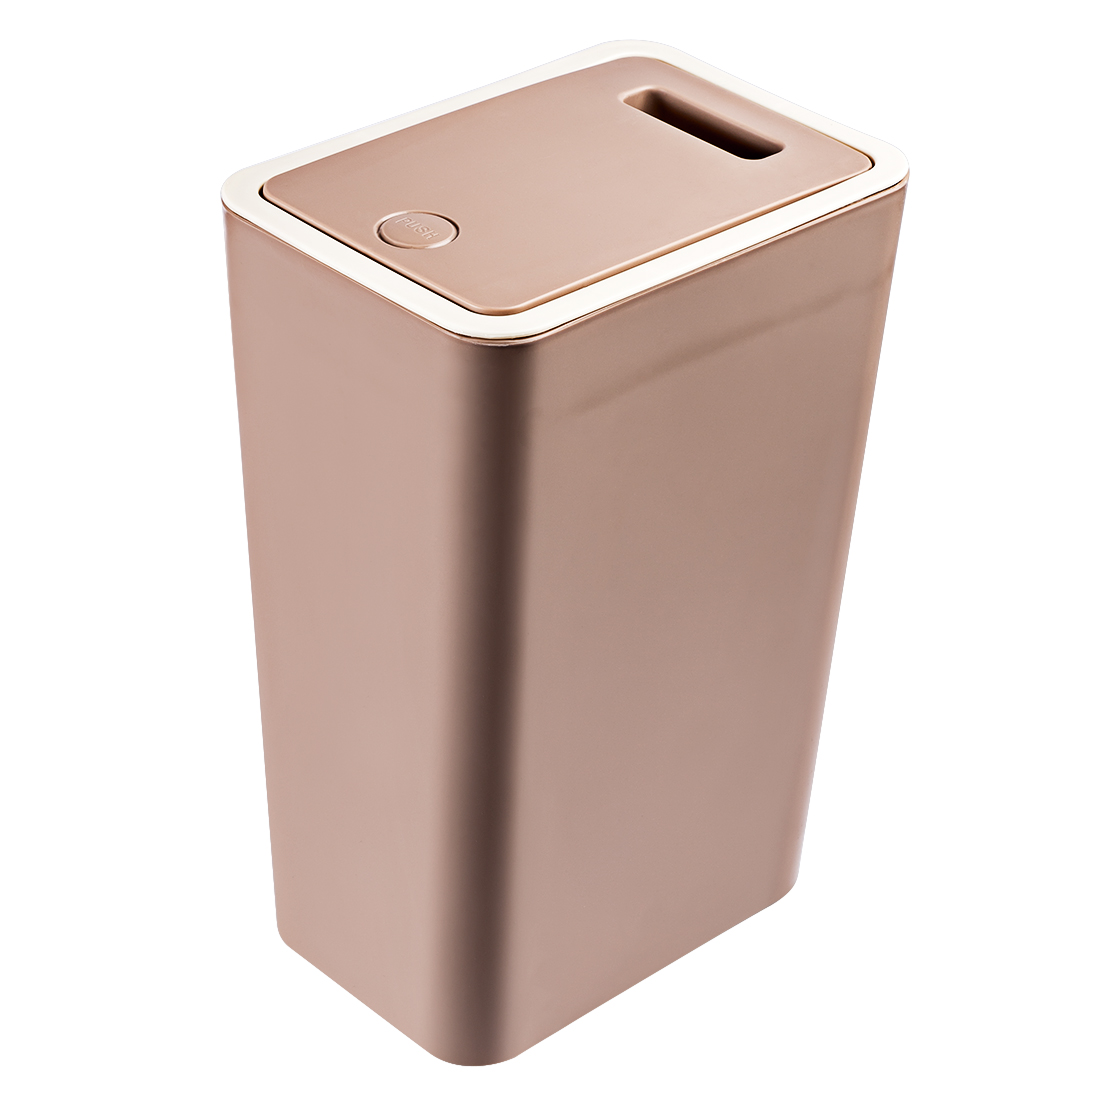 Copper Trash Can With Lid Hipsteen 12l Pressing Type Square Waste Bins Kitchen Wastebin Trash Can With Lid Household Garbage Cans For Home Office Bedroom